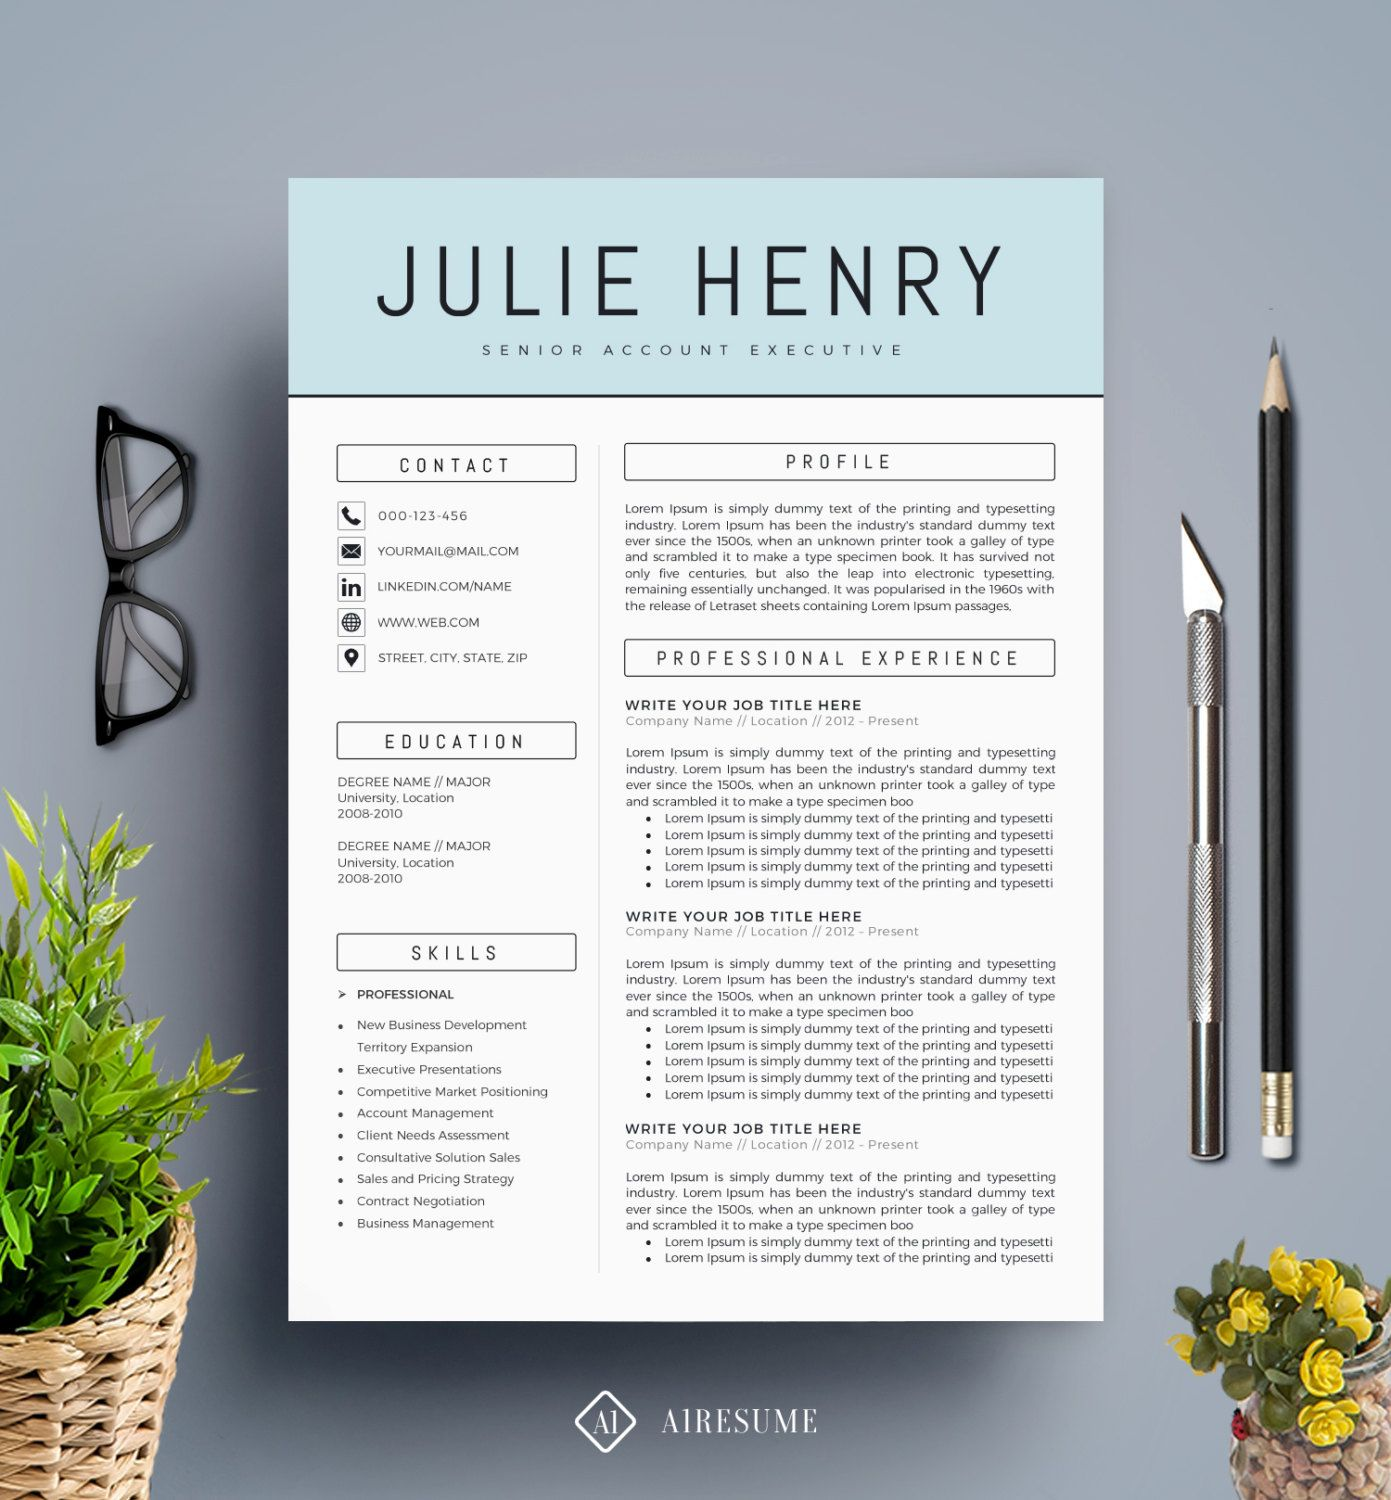 7 Free Resume Templates Pinlucretia Doran On Jobs  Pinterest  Modern Resume Template